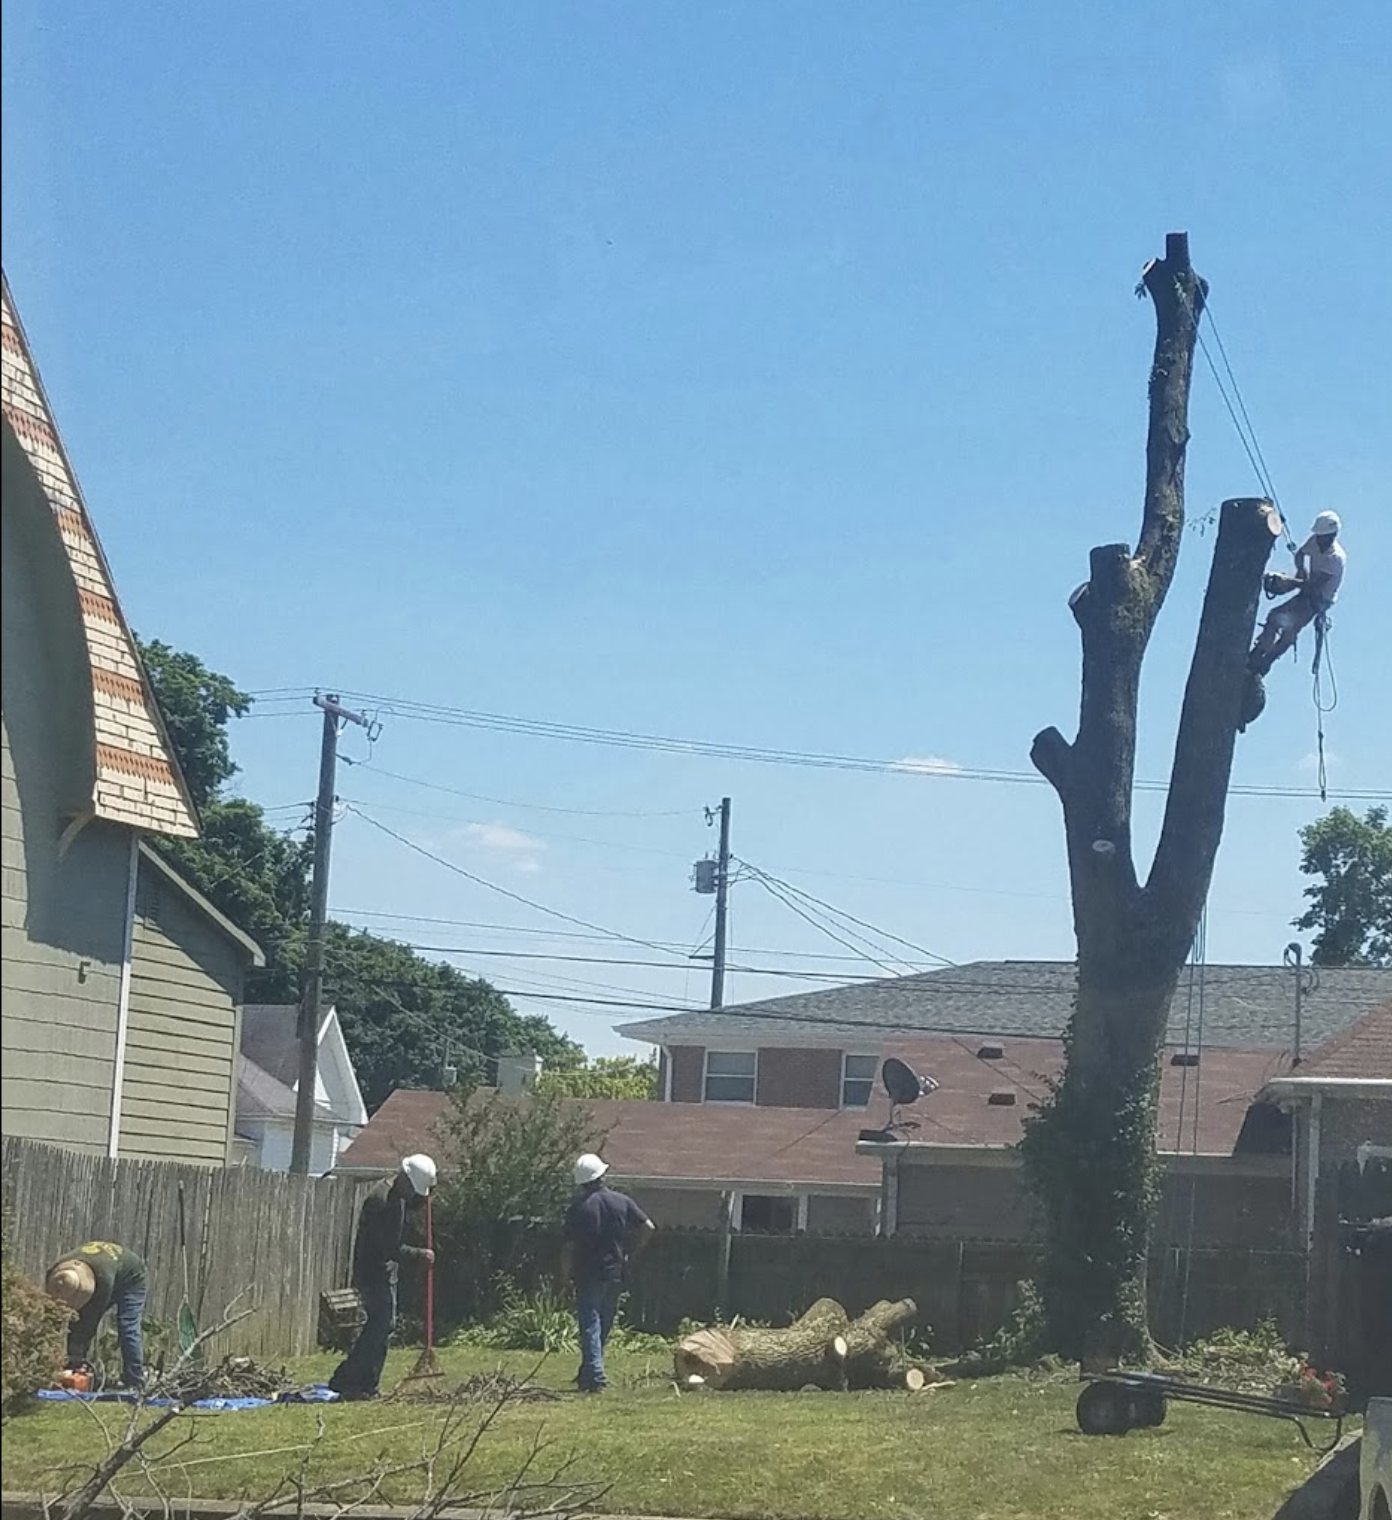 black-cherry-tree-service-tree-removal-tree-trimming-branches.png